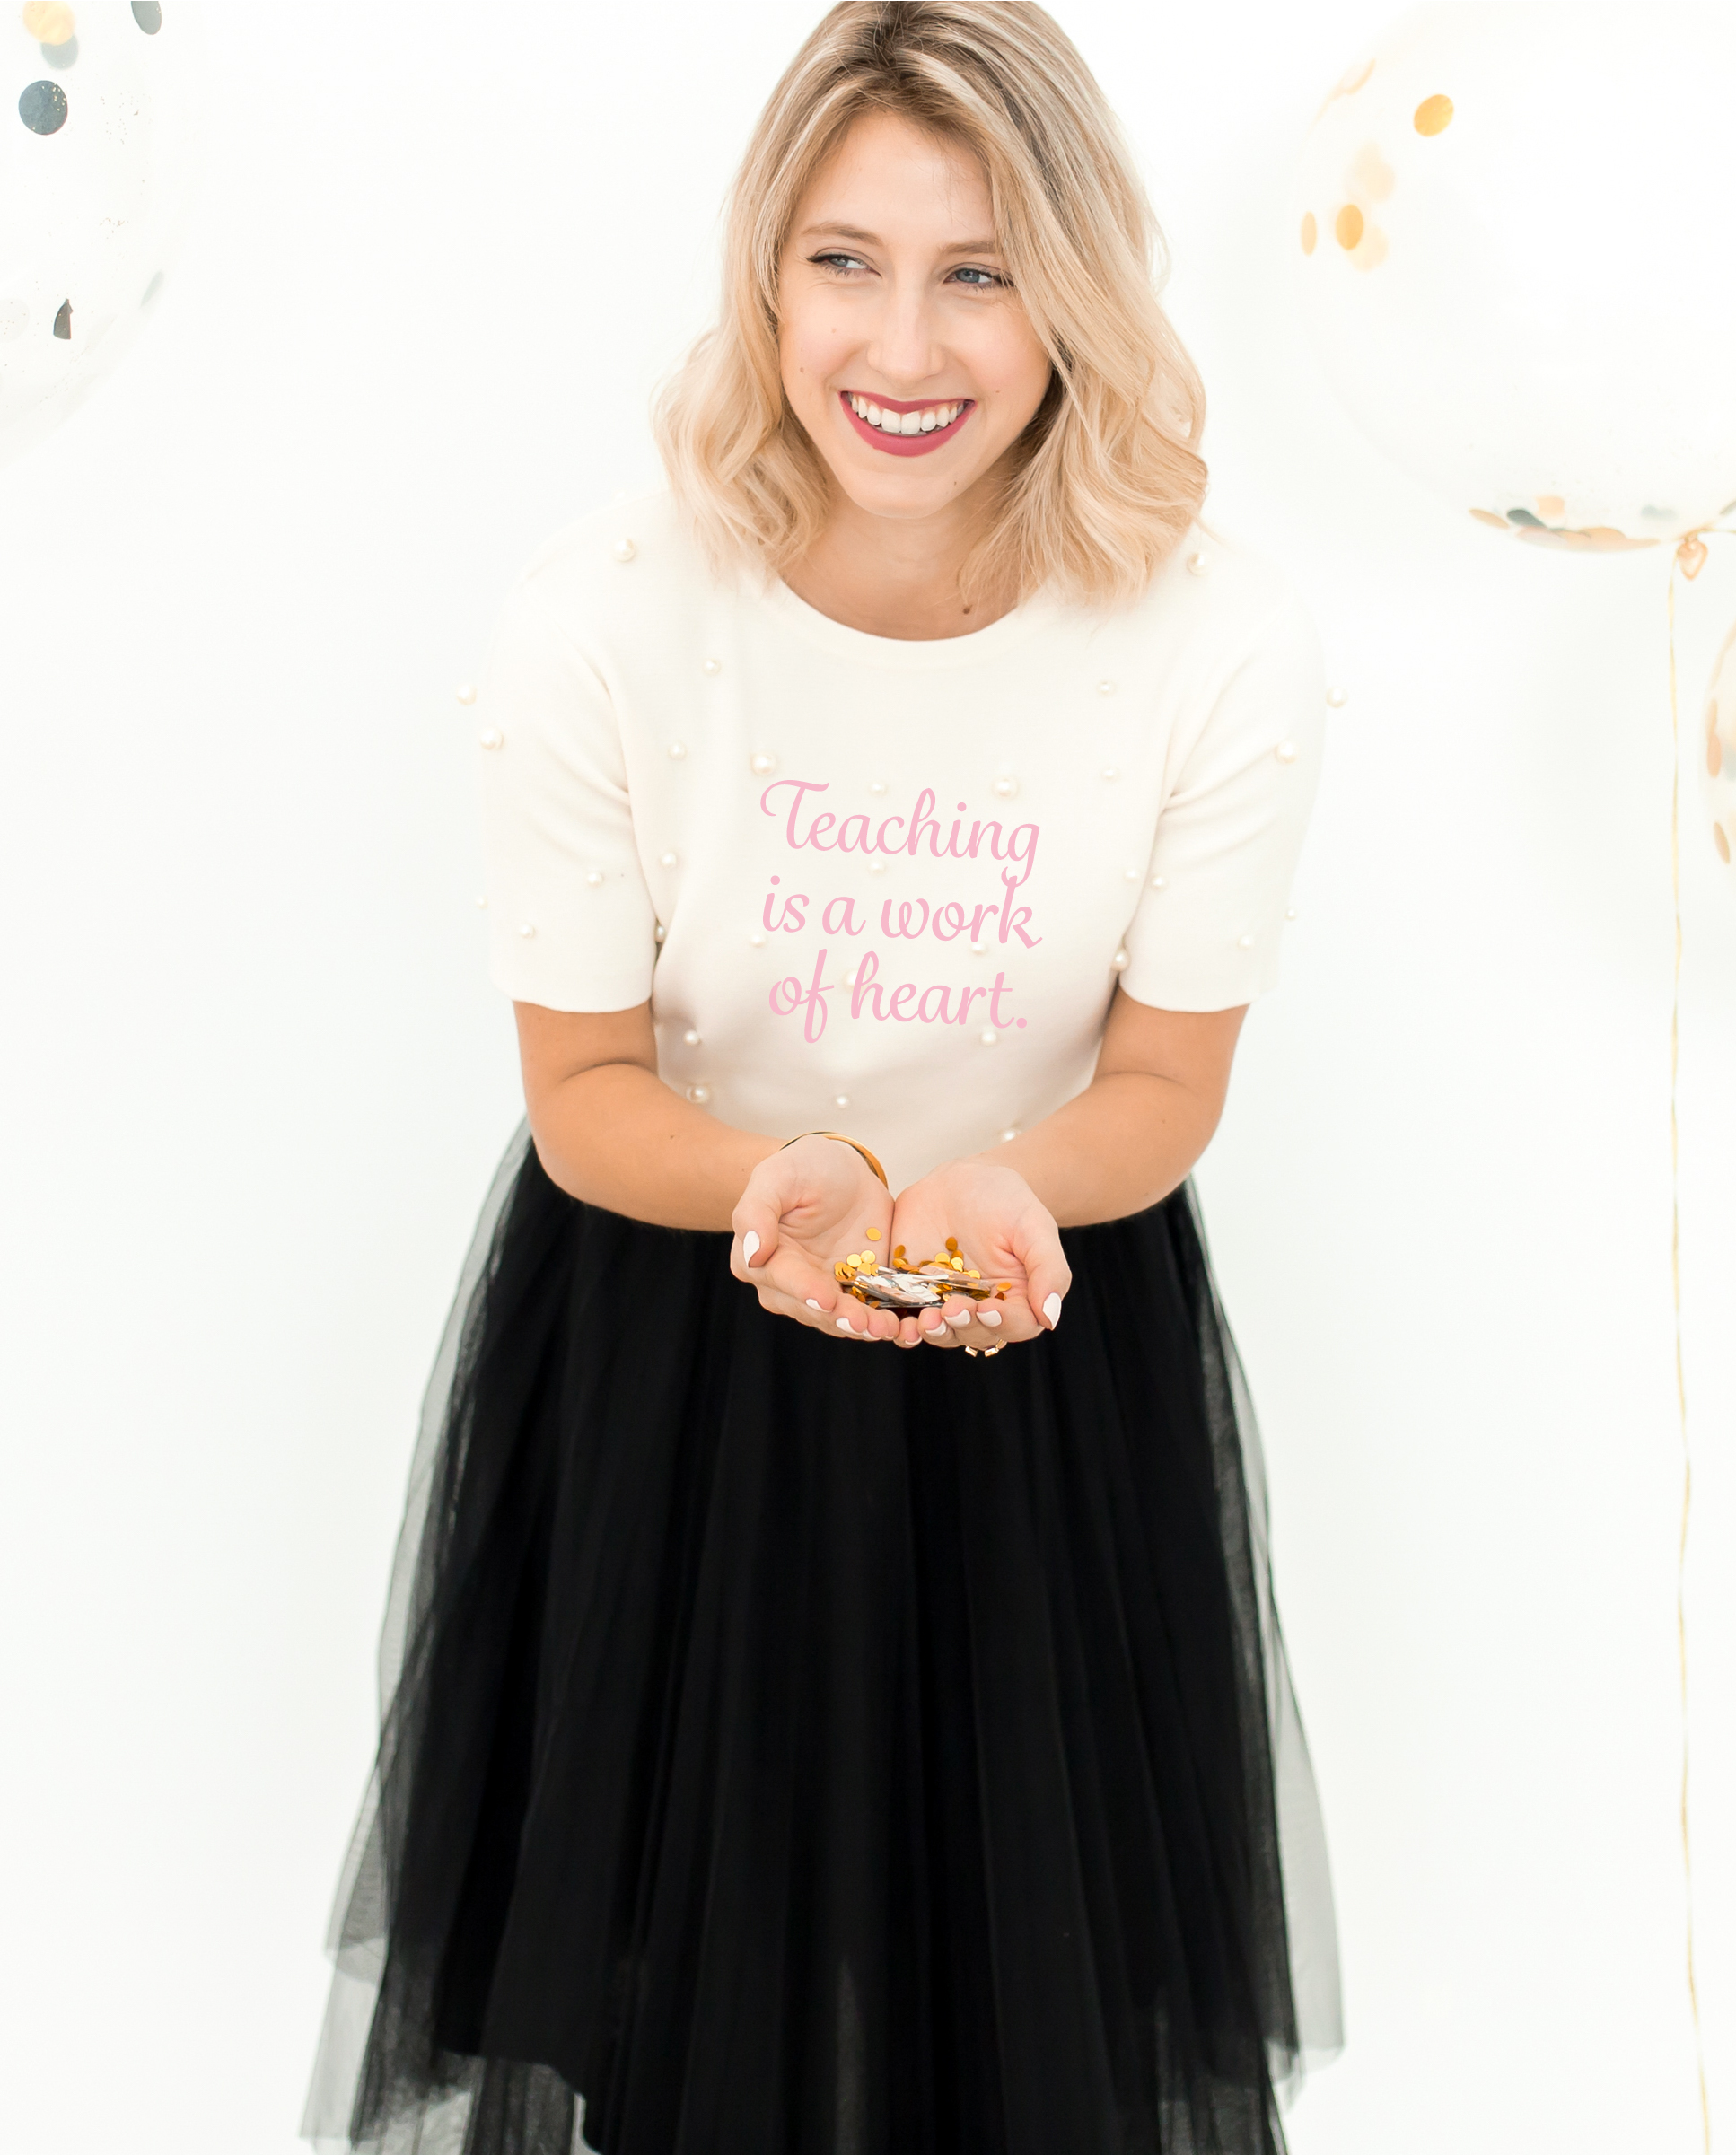 Lehrergeschenk, Happy Teaching-Kollektion, Lehreroutfit, Back to School, Lehrerleben, Lehrerlifestyle, Lehreralltag, Happy Teaching-Community